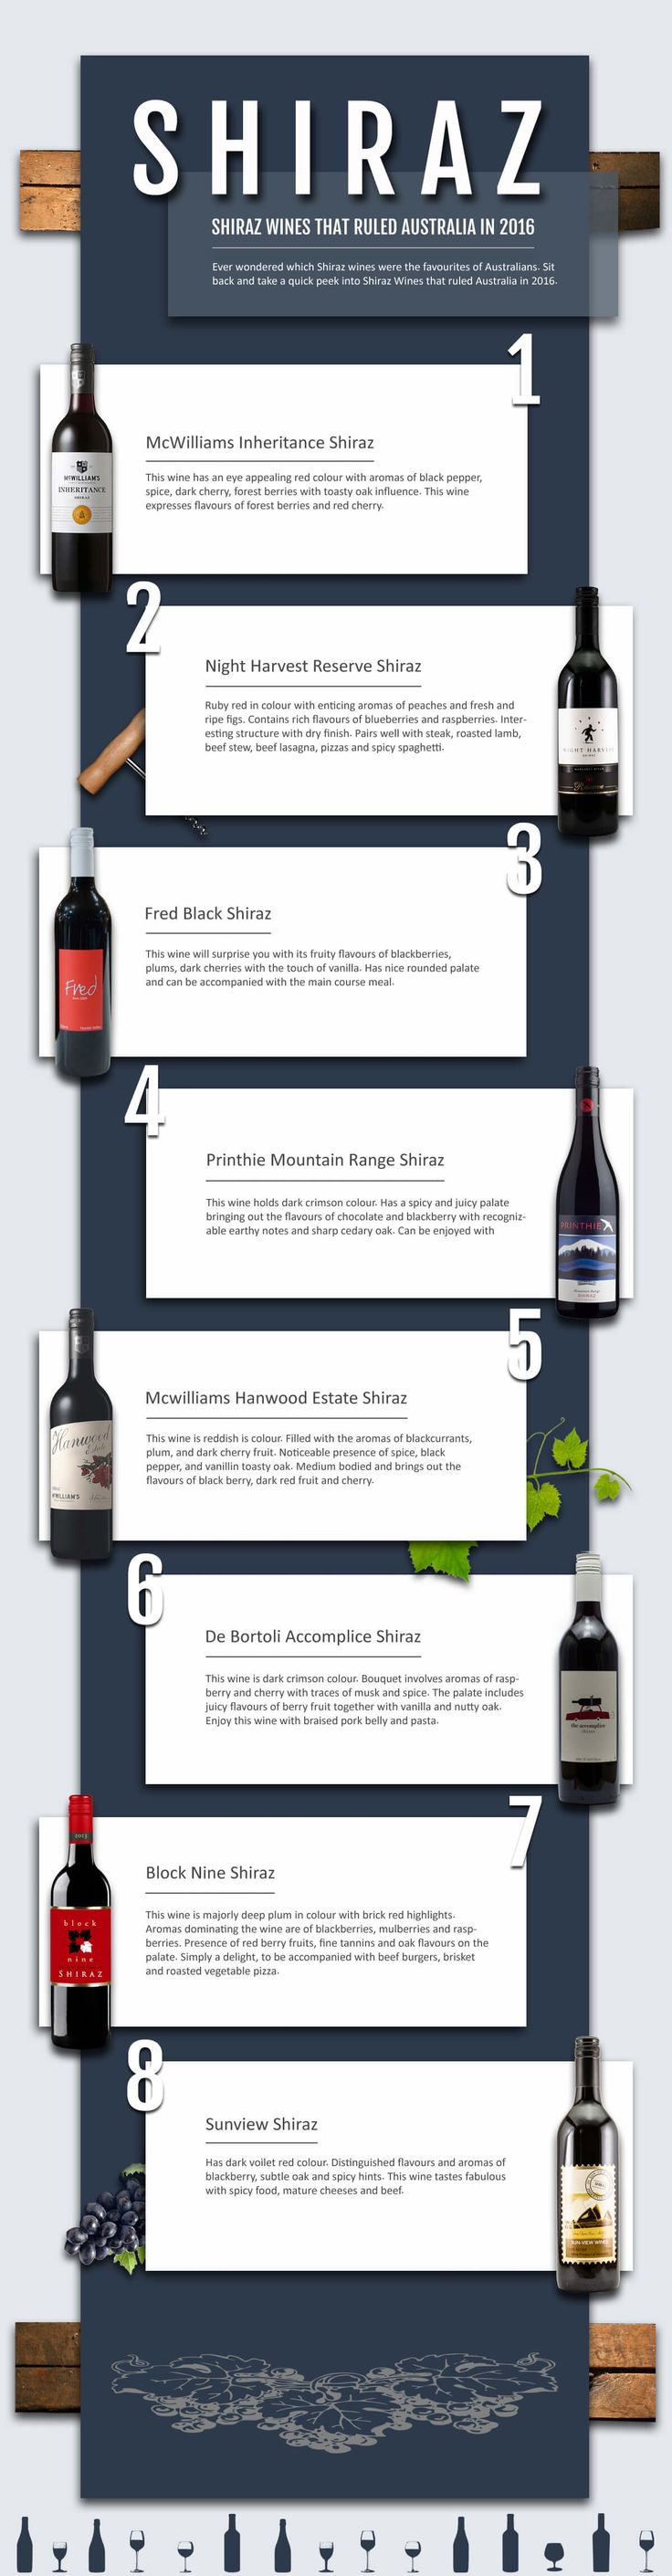 Shiraz Wines That Ruled Australia in 2016 (Popular Shiraz Wines in 2016)  #shiraz #shirazwines #wines #winesaustralia